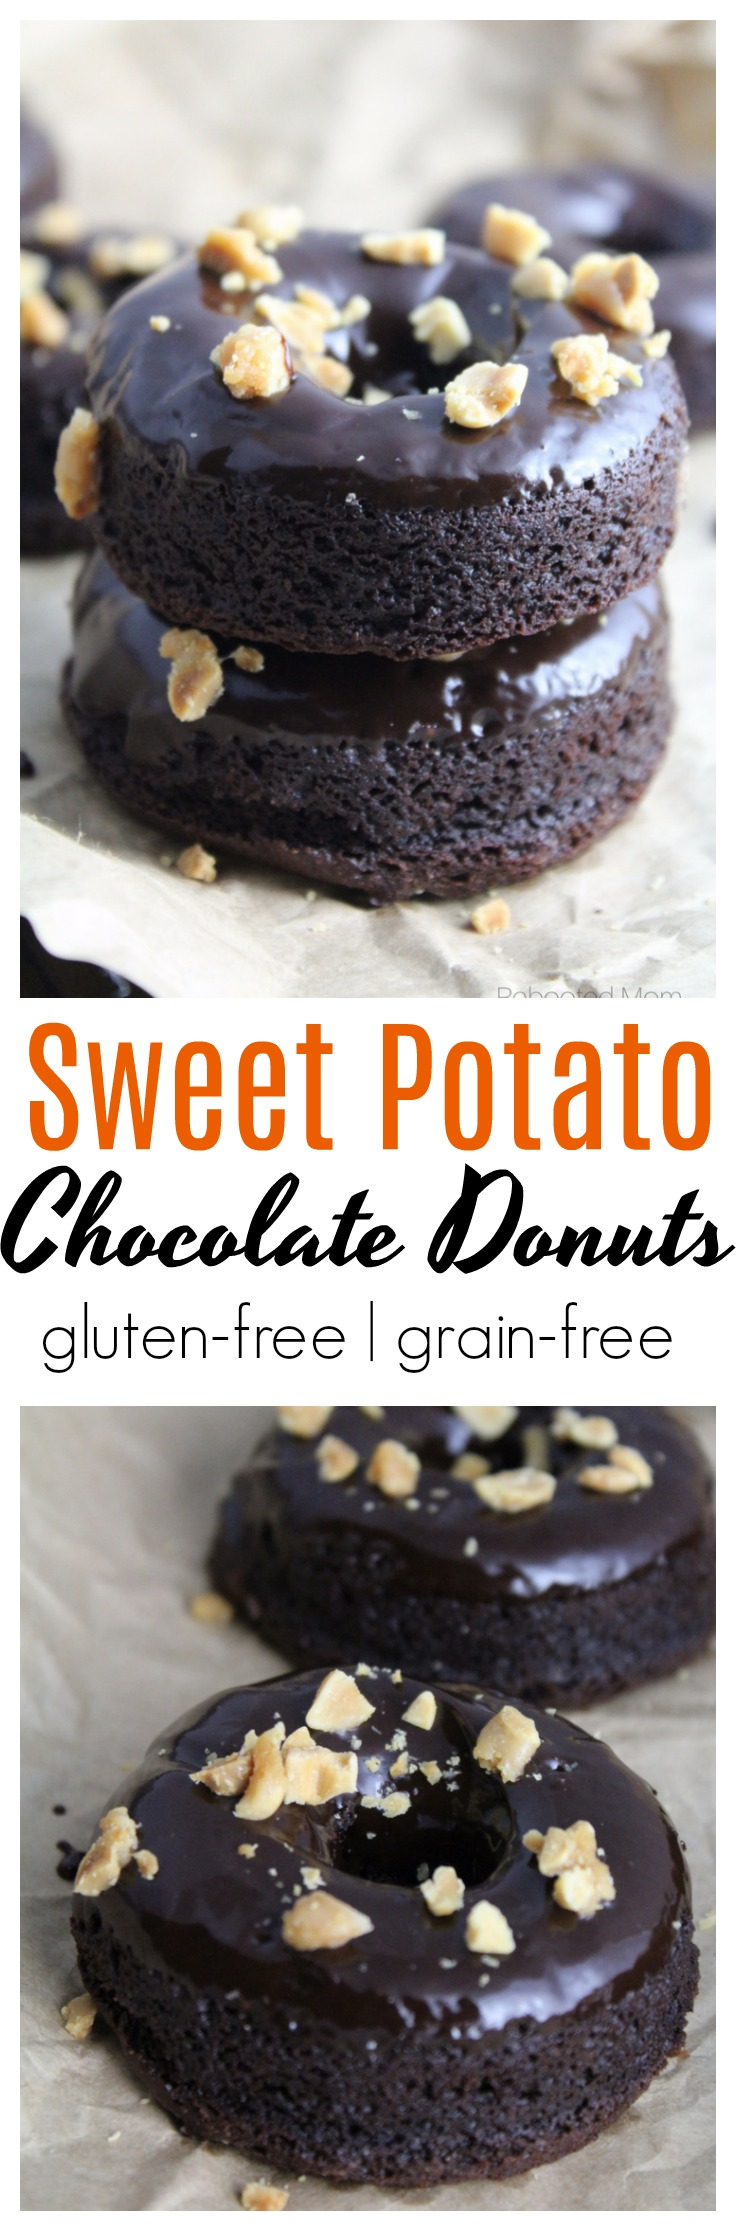 Sweet potatoes are combined with chocolate in these decadent Sweet Potato Chocolate Donuts that are gluten-free, grain-free and easily adapted to be dairy-free!